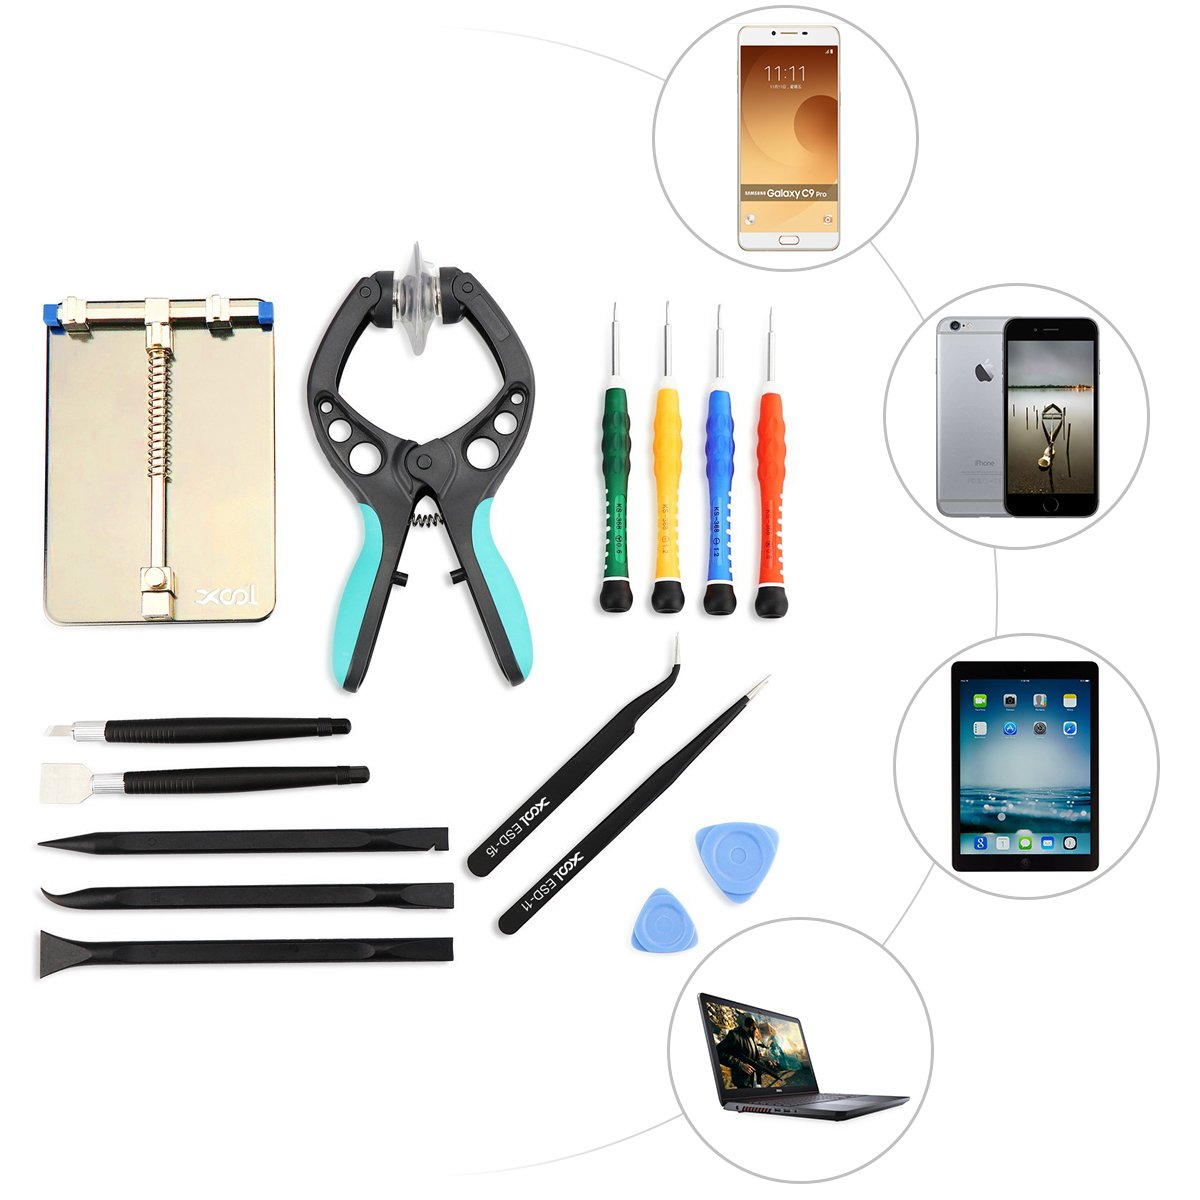 LCD Screen Opening Pliers Opening Repair Tool Kit with PCB Fixtures, ESD Tweezers, Opening Pry Tools, Screwdrivers, Scraper Knife and Carving Knife for cell phone and electronic products maintenance by XOOL (Image #8)